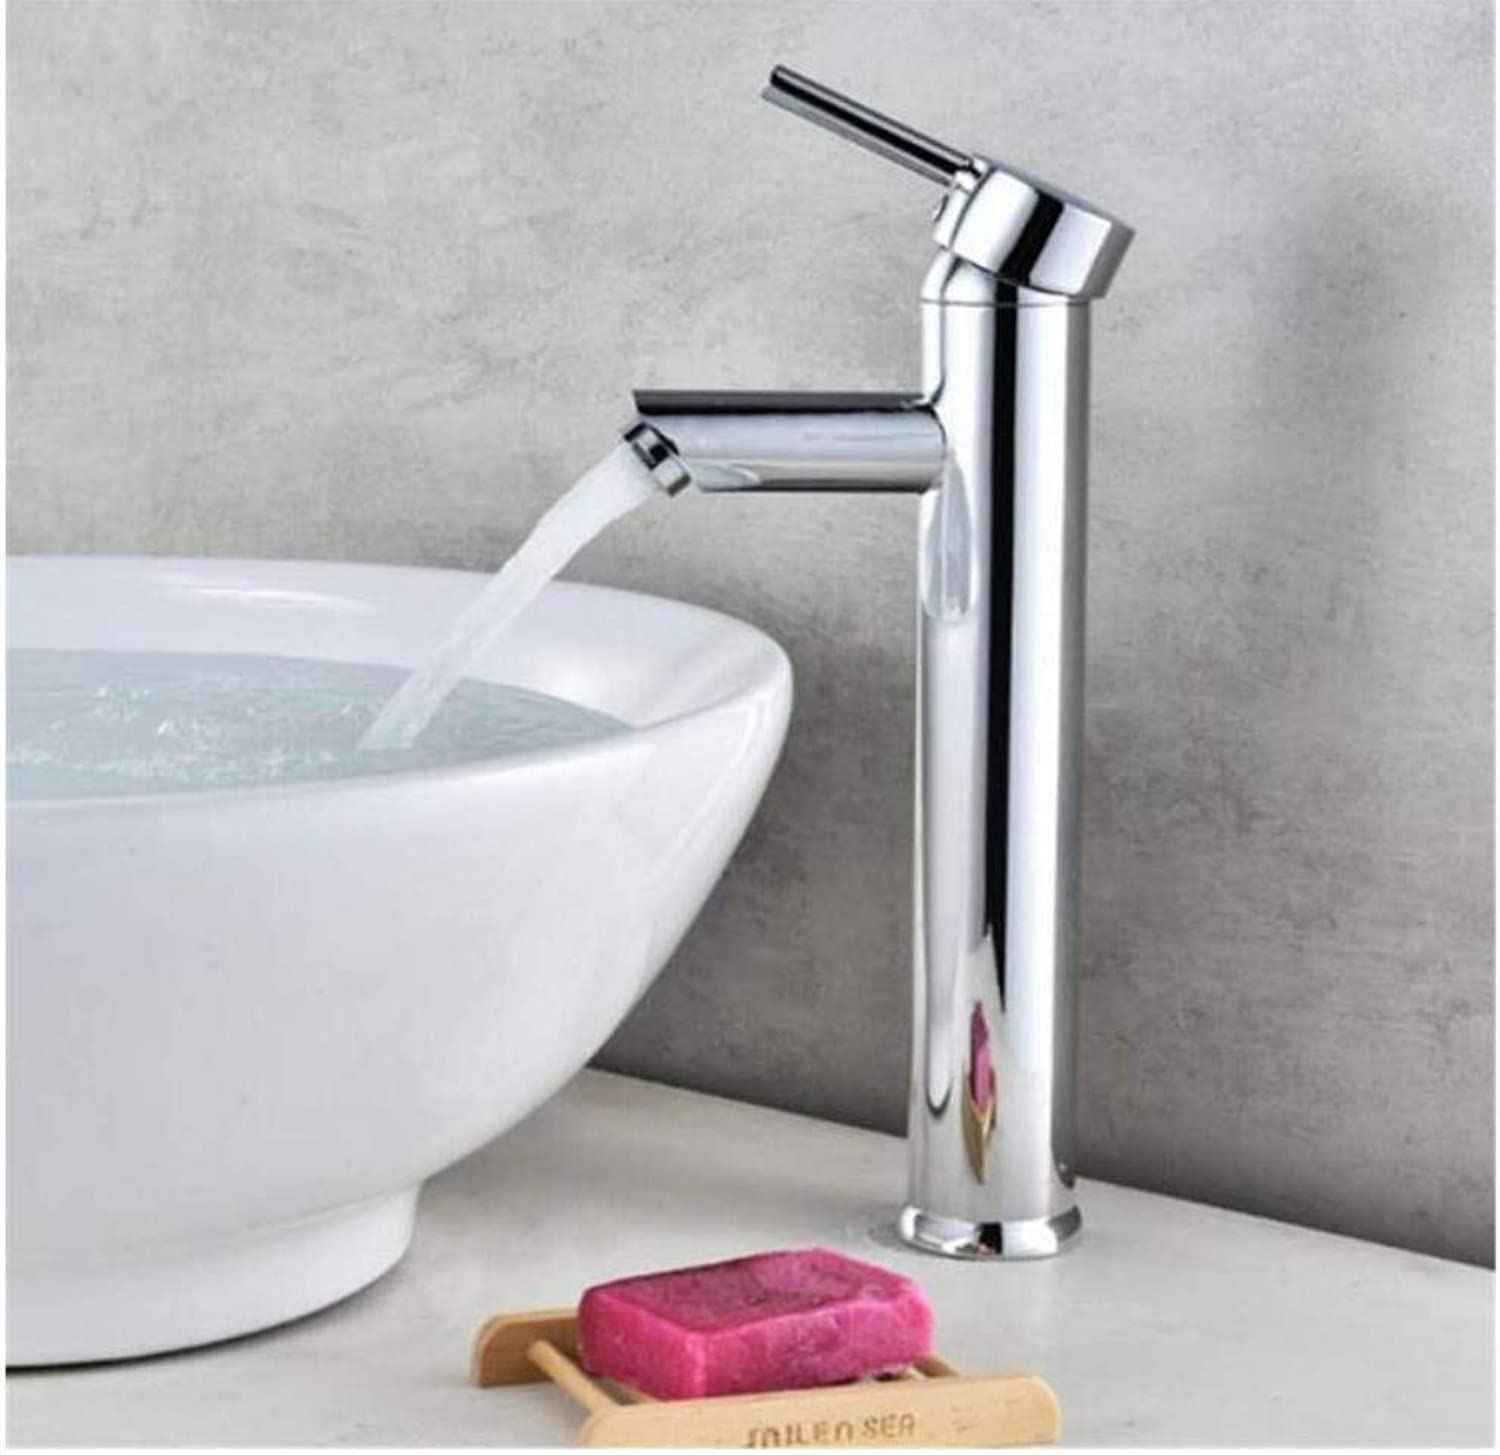 Modern Double Basin Sink Hot and Cold Water Faucetfaucet Tall Sink Single Handle Washbasin Tap